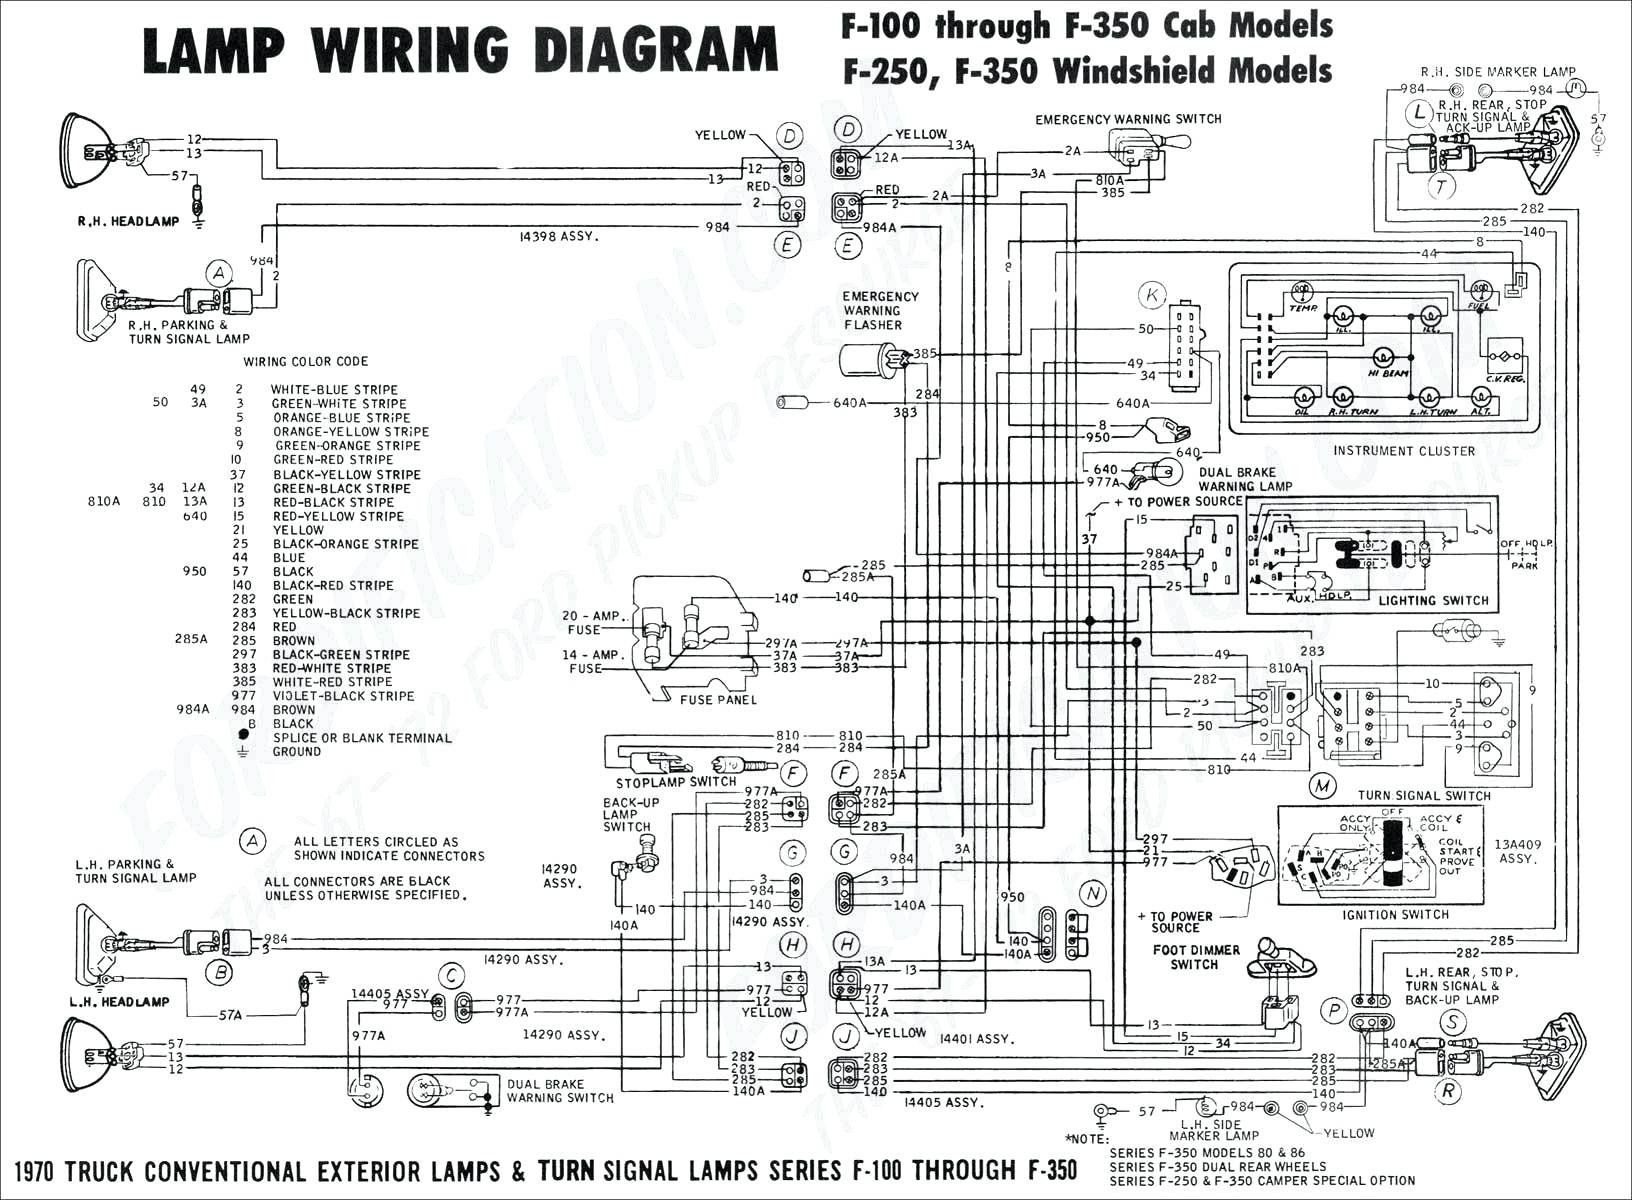 2006 ford f350 wiring diagram data wiring diagrams \u2022 regarding 2006 Ford F350 Fuse Diagram